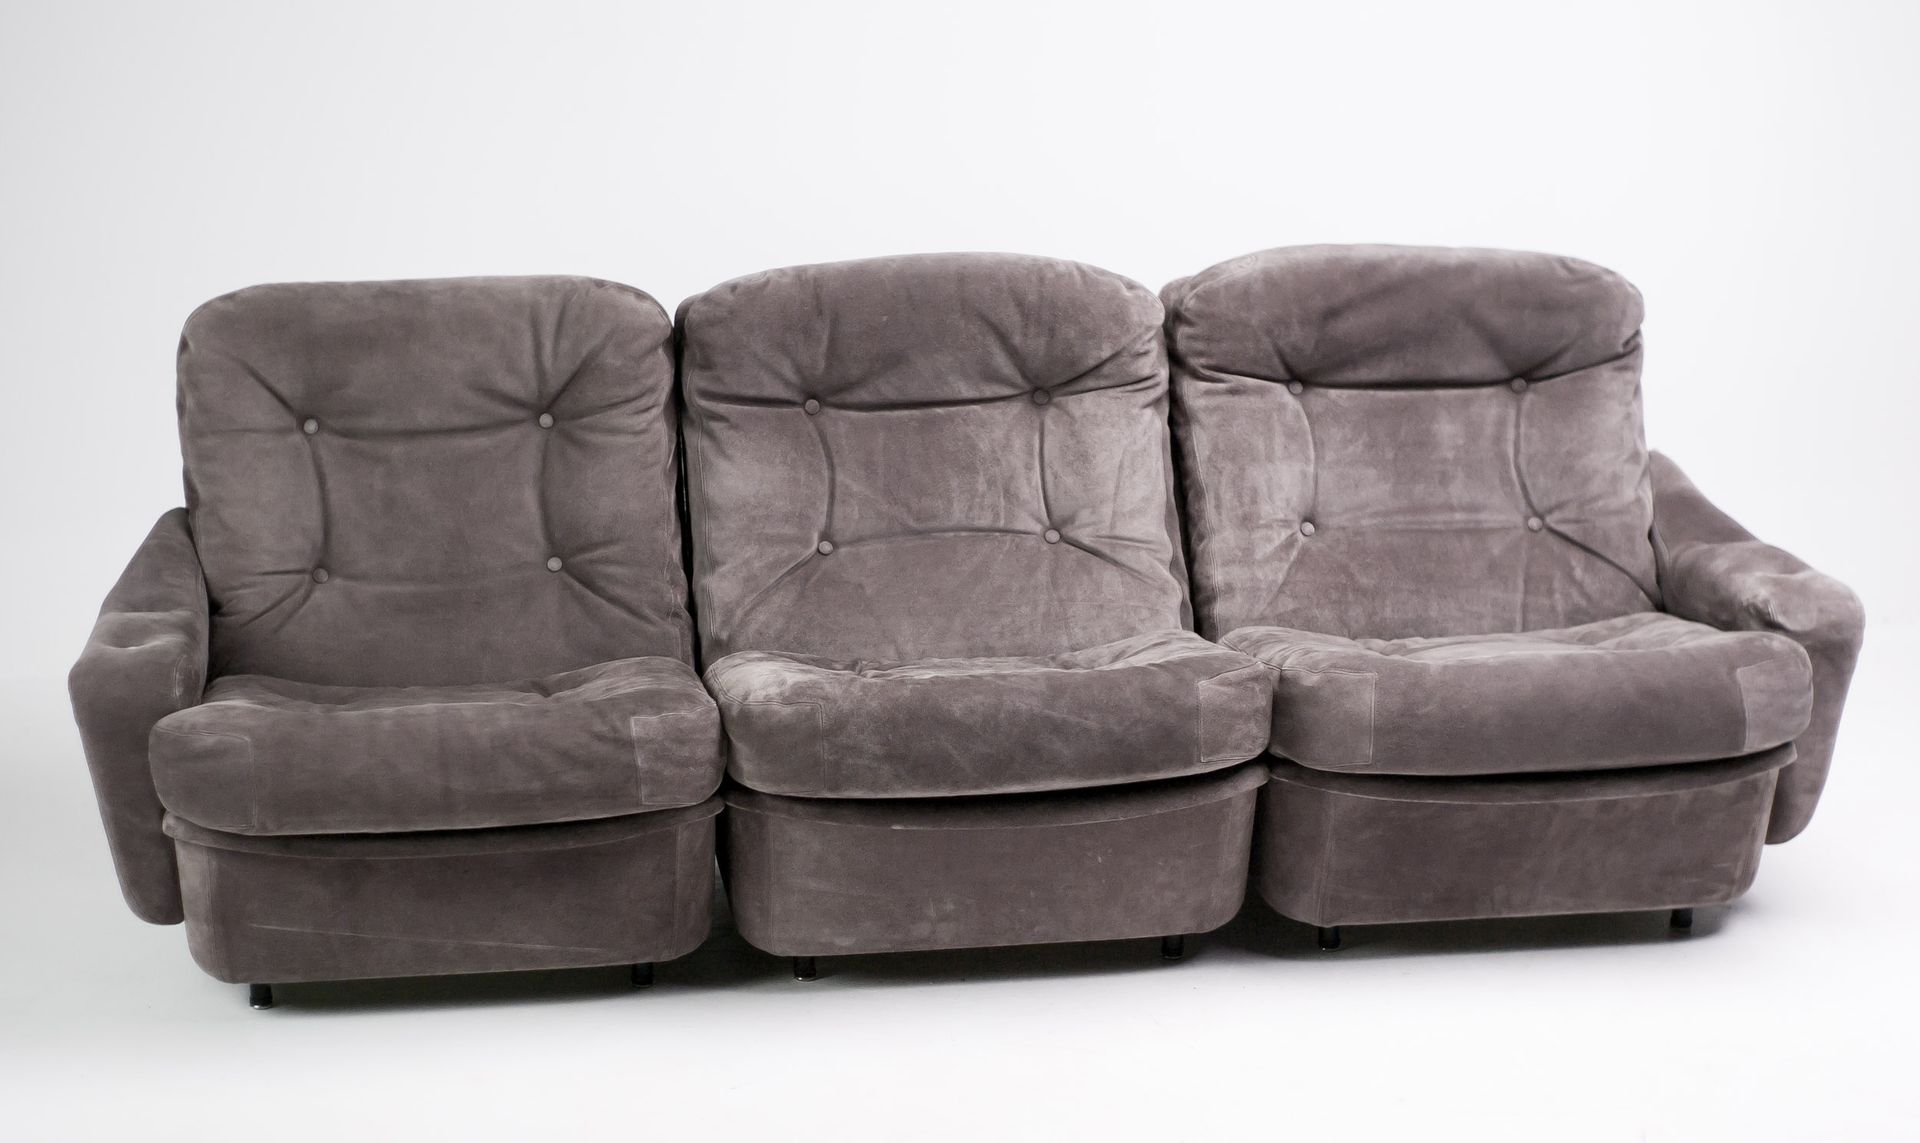 Vintage Three Seater Modular Sofas In Suede From Airborne Set Of 2